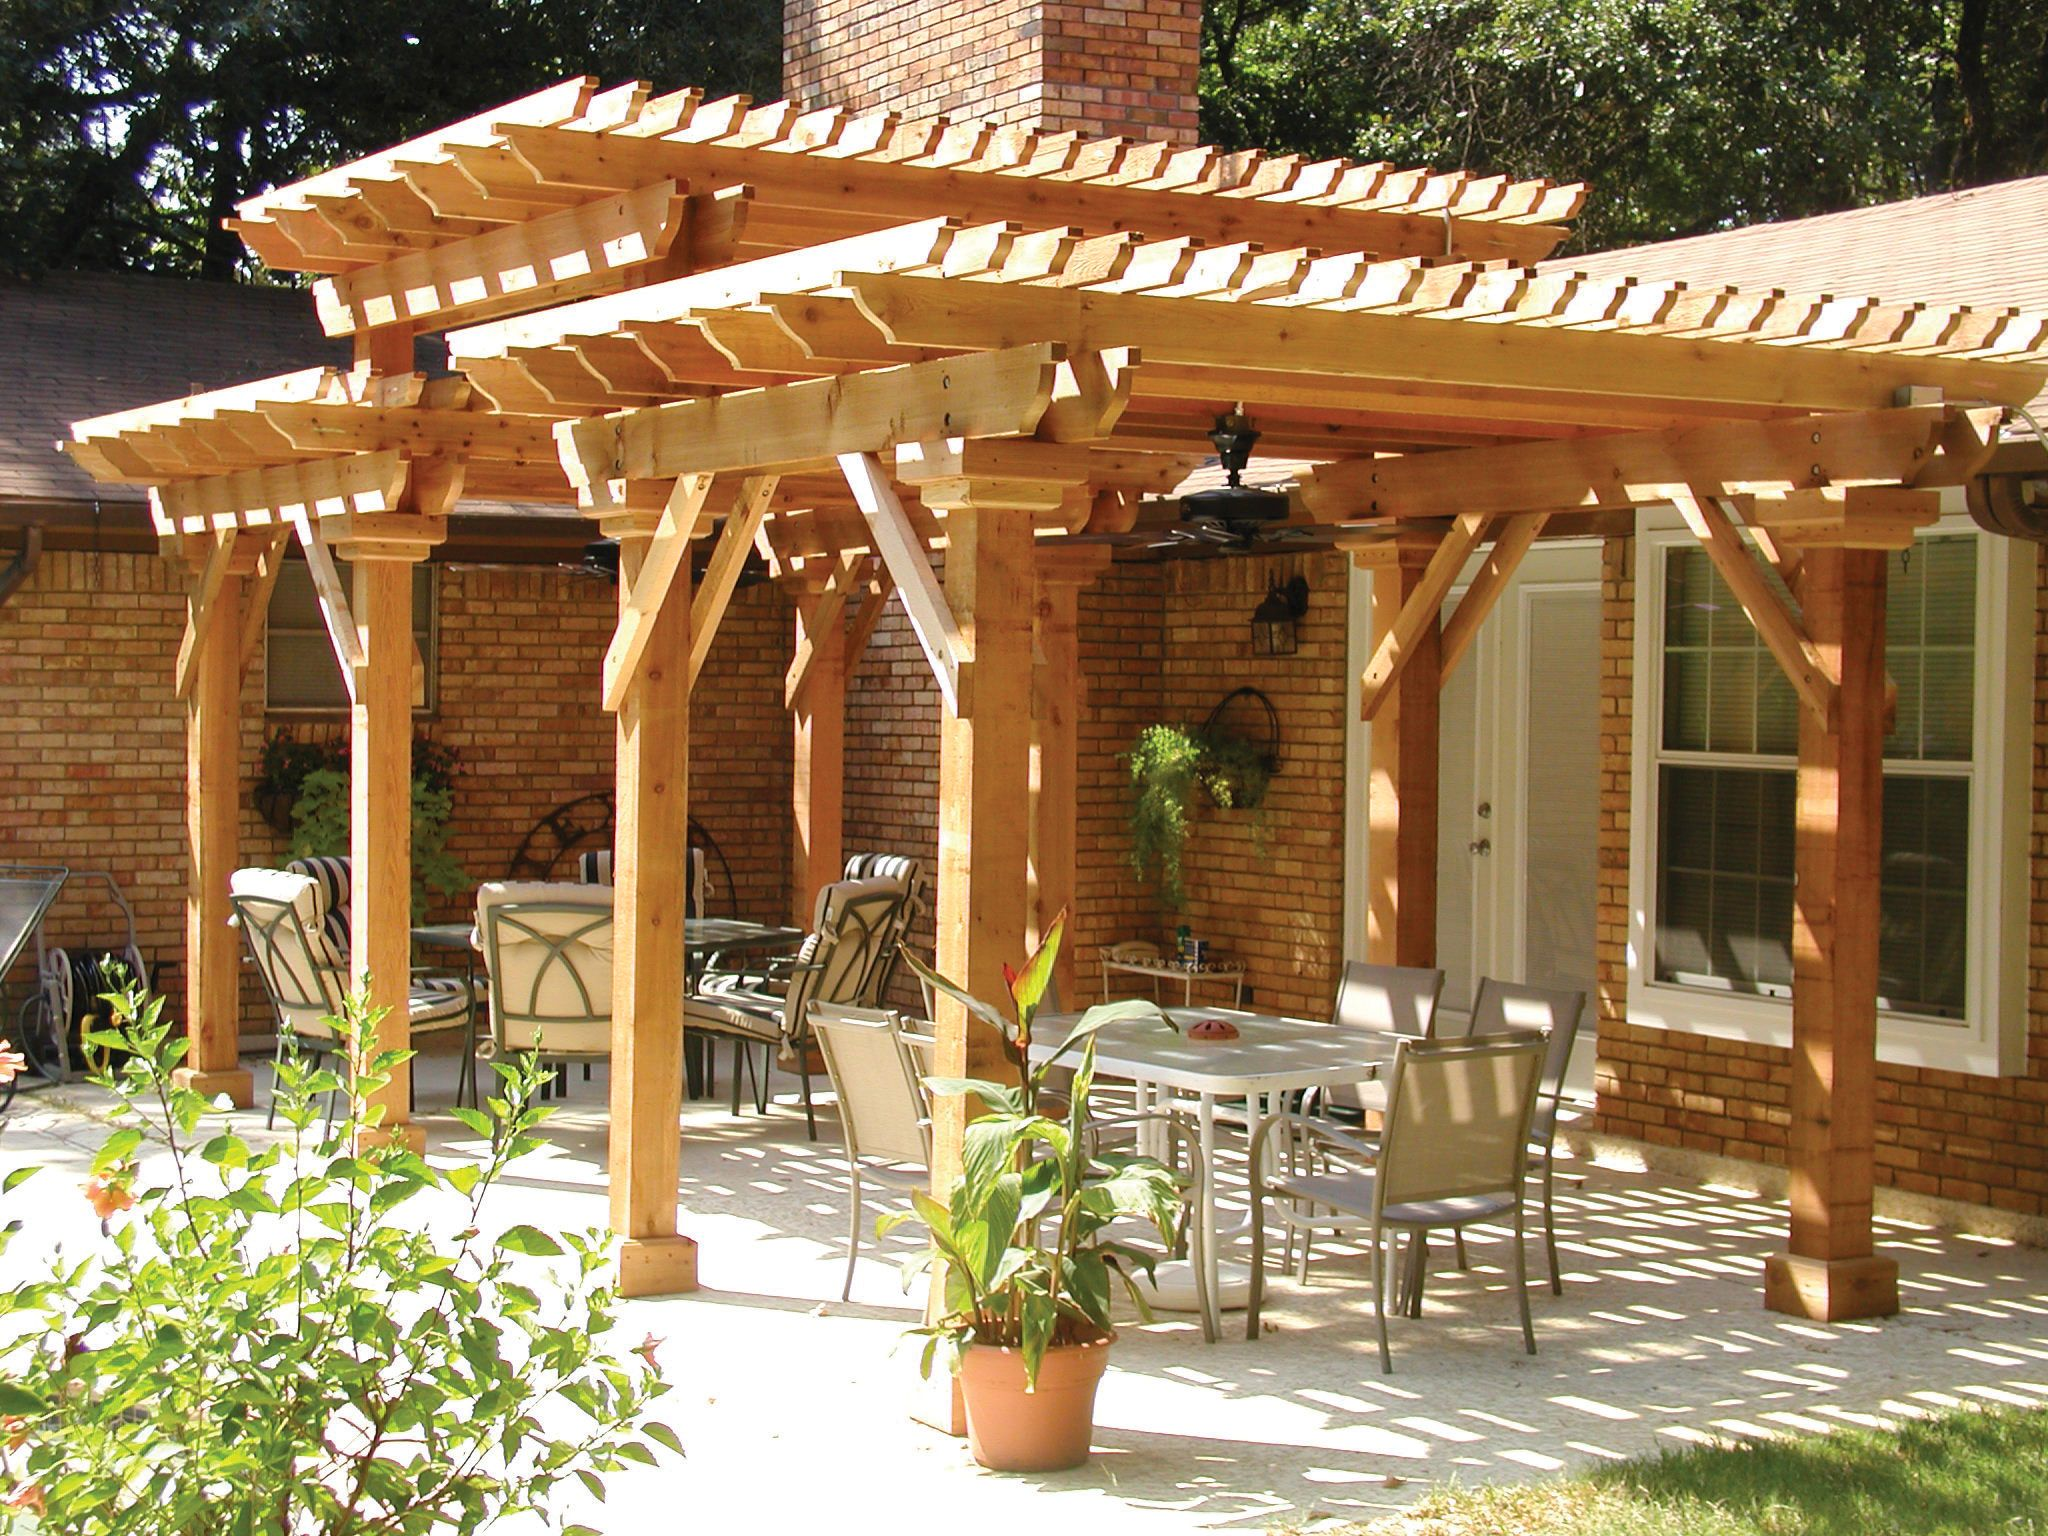 With Dimension And Depth This Fabulous Pergola Design Not Only Shades An Outdoor Space It 39 S